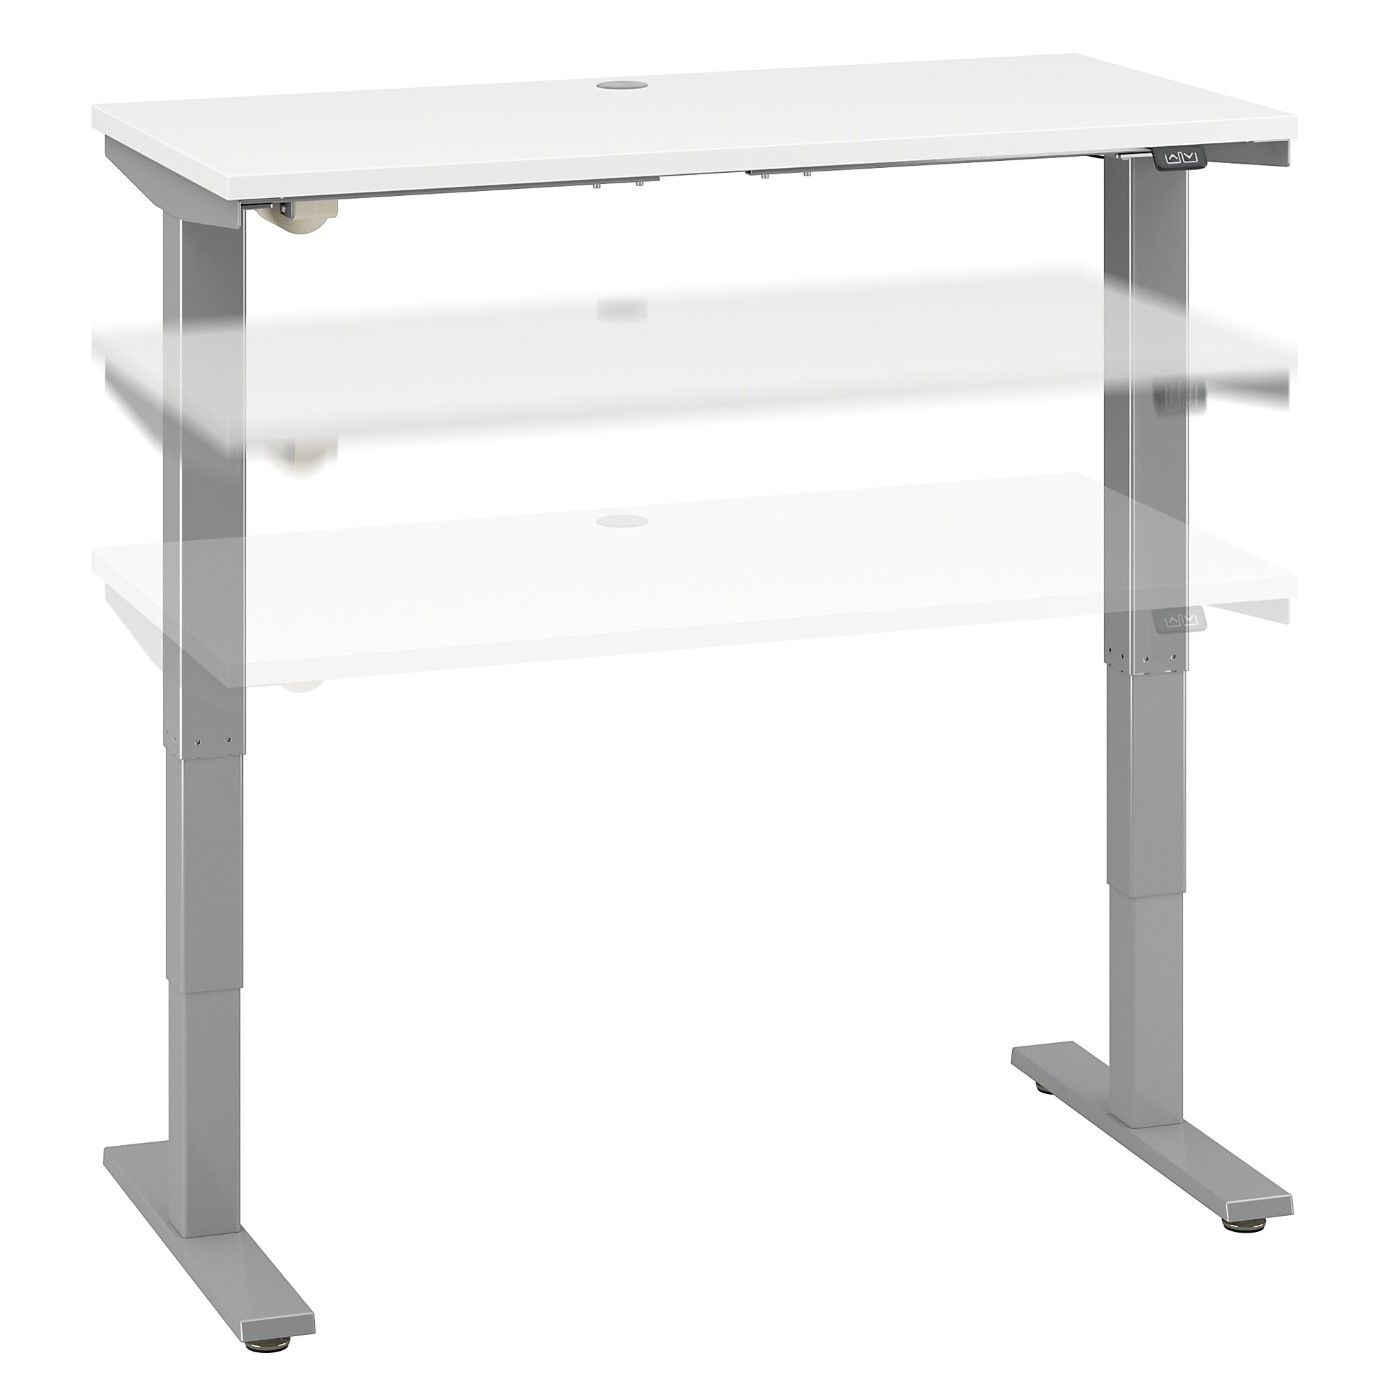 MOVE 40 SERIES BY BUSH BUSINESS FURNITURE 48W X 24D HEIGHT ADJUSTABLE STANDING DESK. FREE SHIPPING